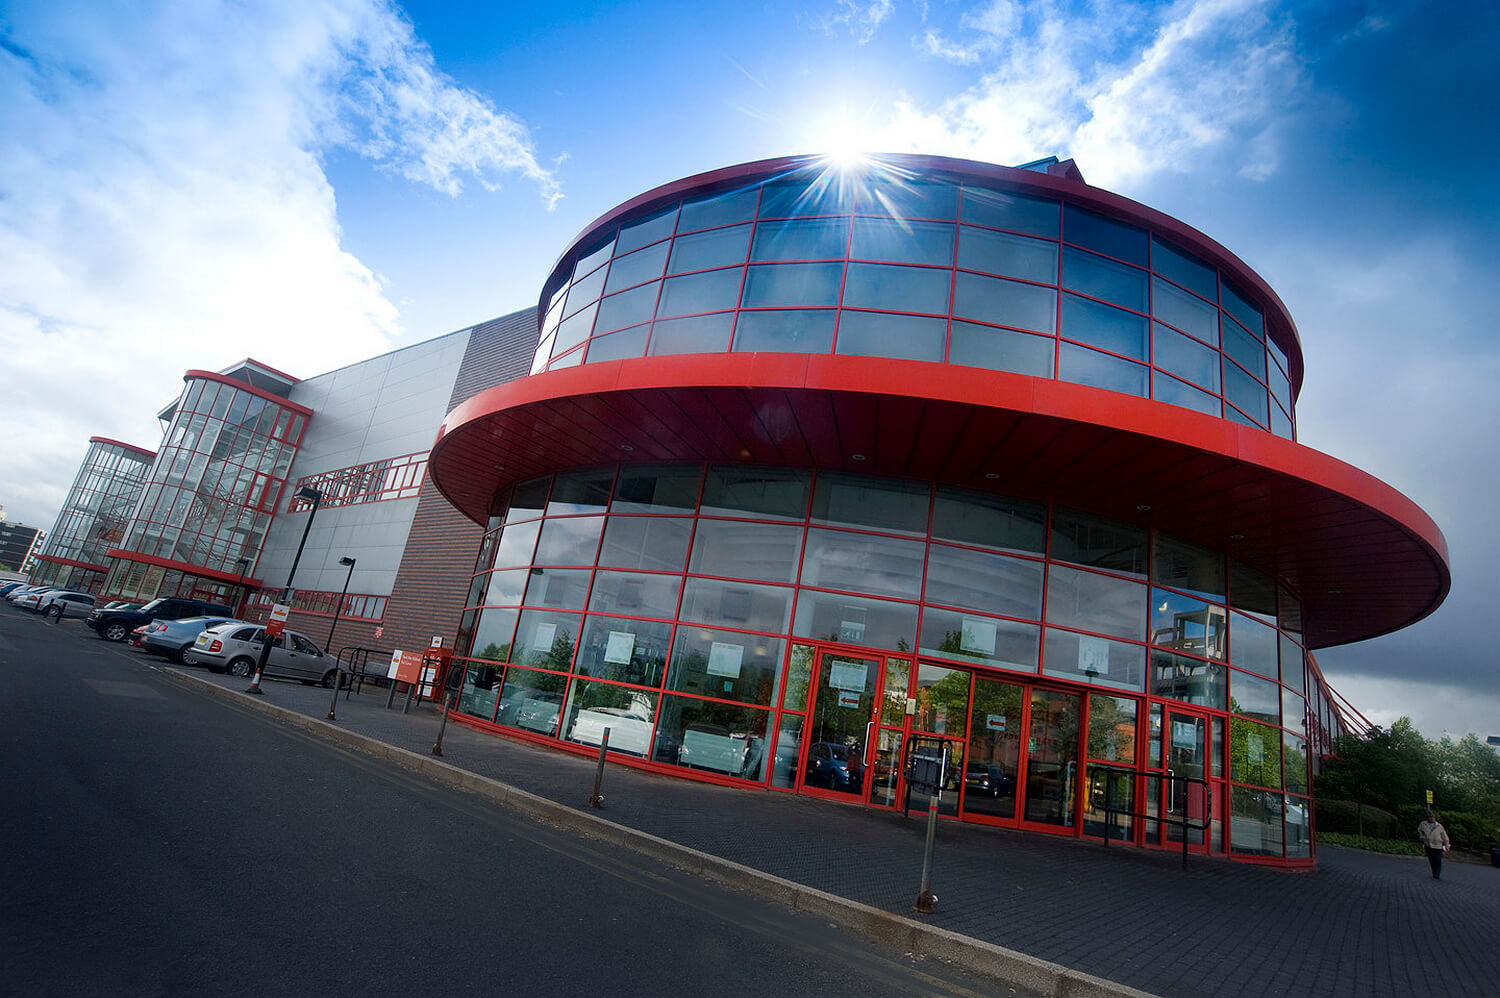 Commercial property photography, interior and exterior, Royal Mail HQ in Wolverhampton, Birmingham for portfolio